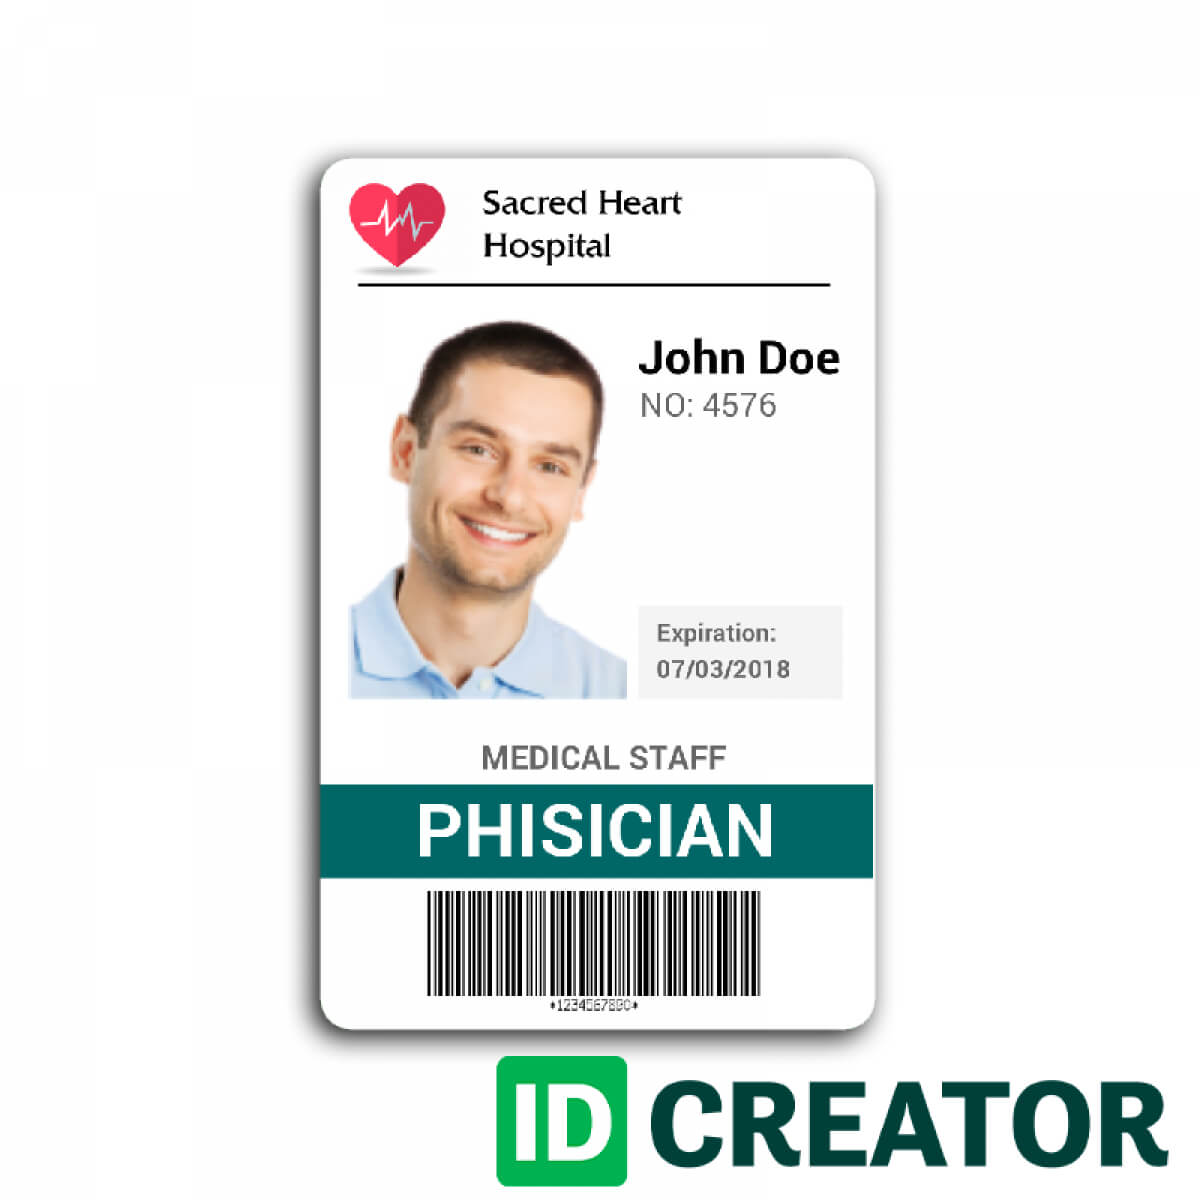 Doctor Id Card #2 | Wit Research | Id Card Template regarding Sample Of Id Card Template